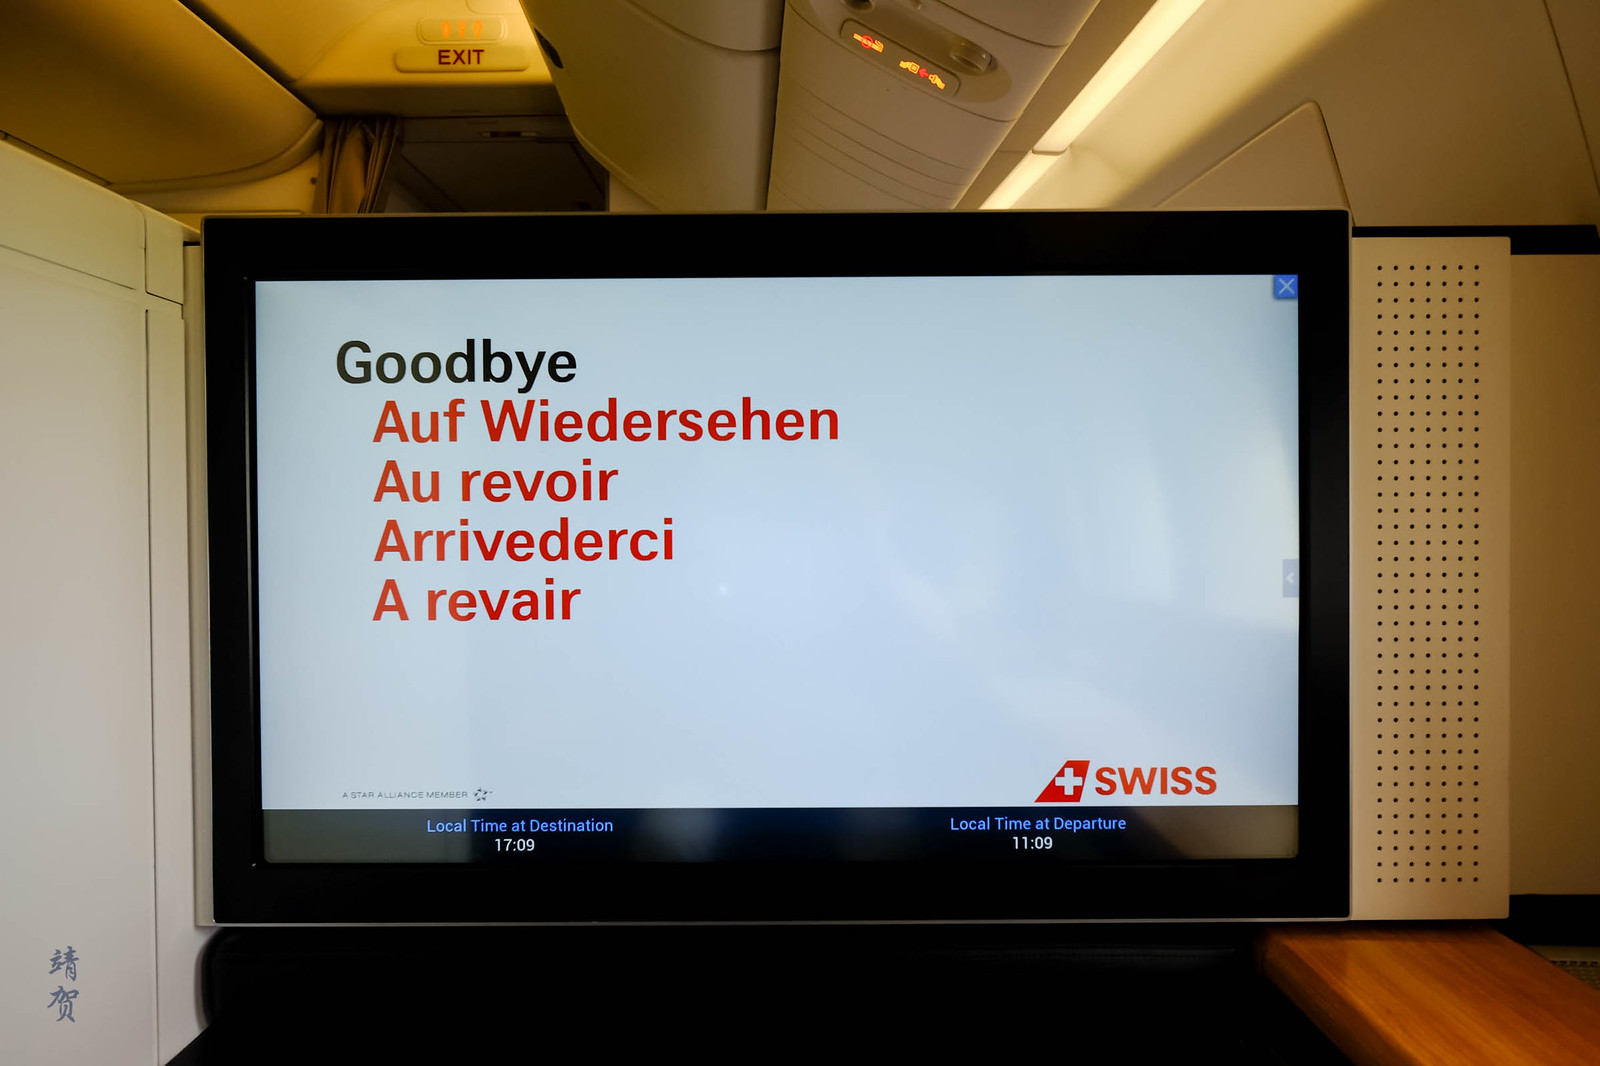 Goodbye from Swiss